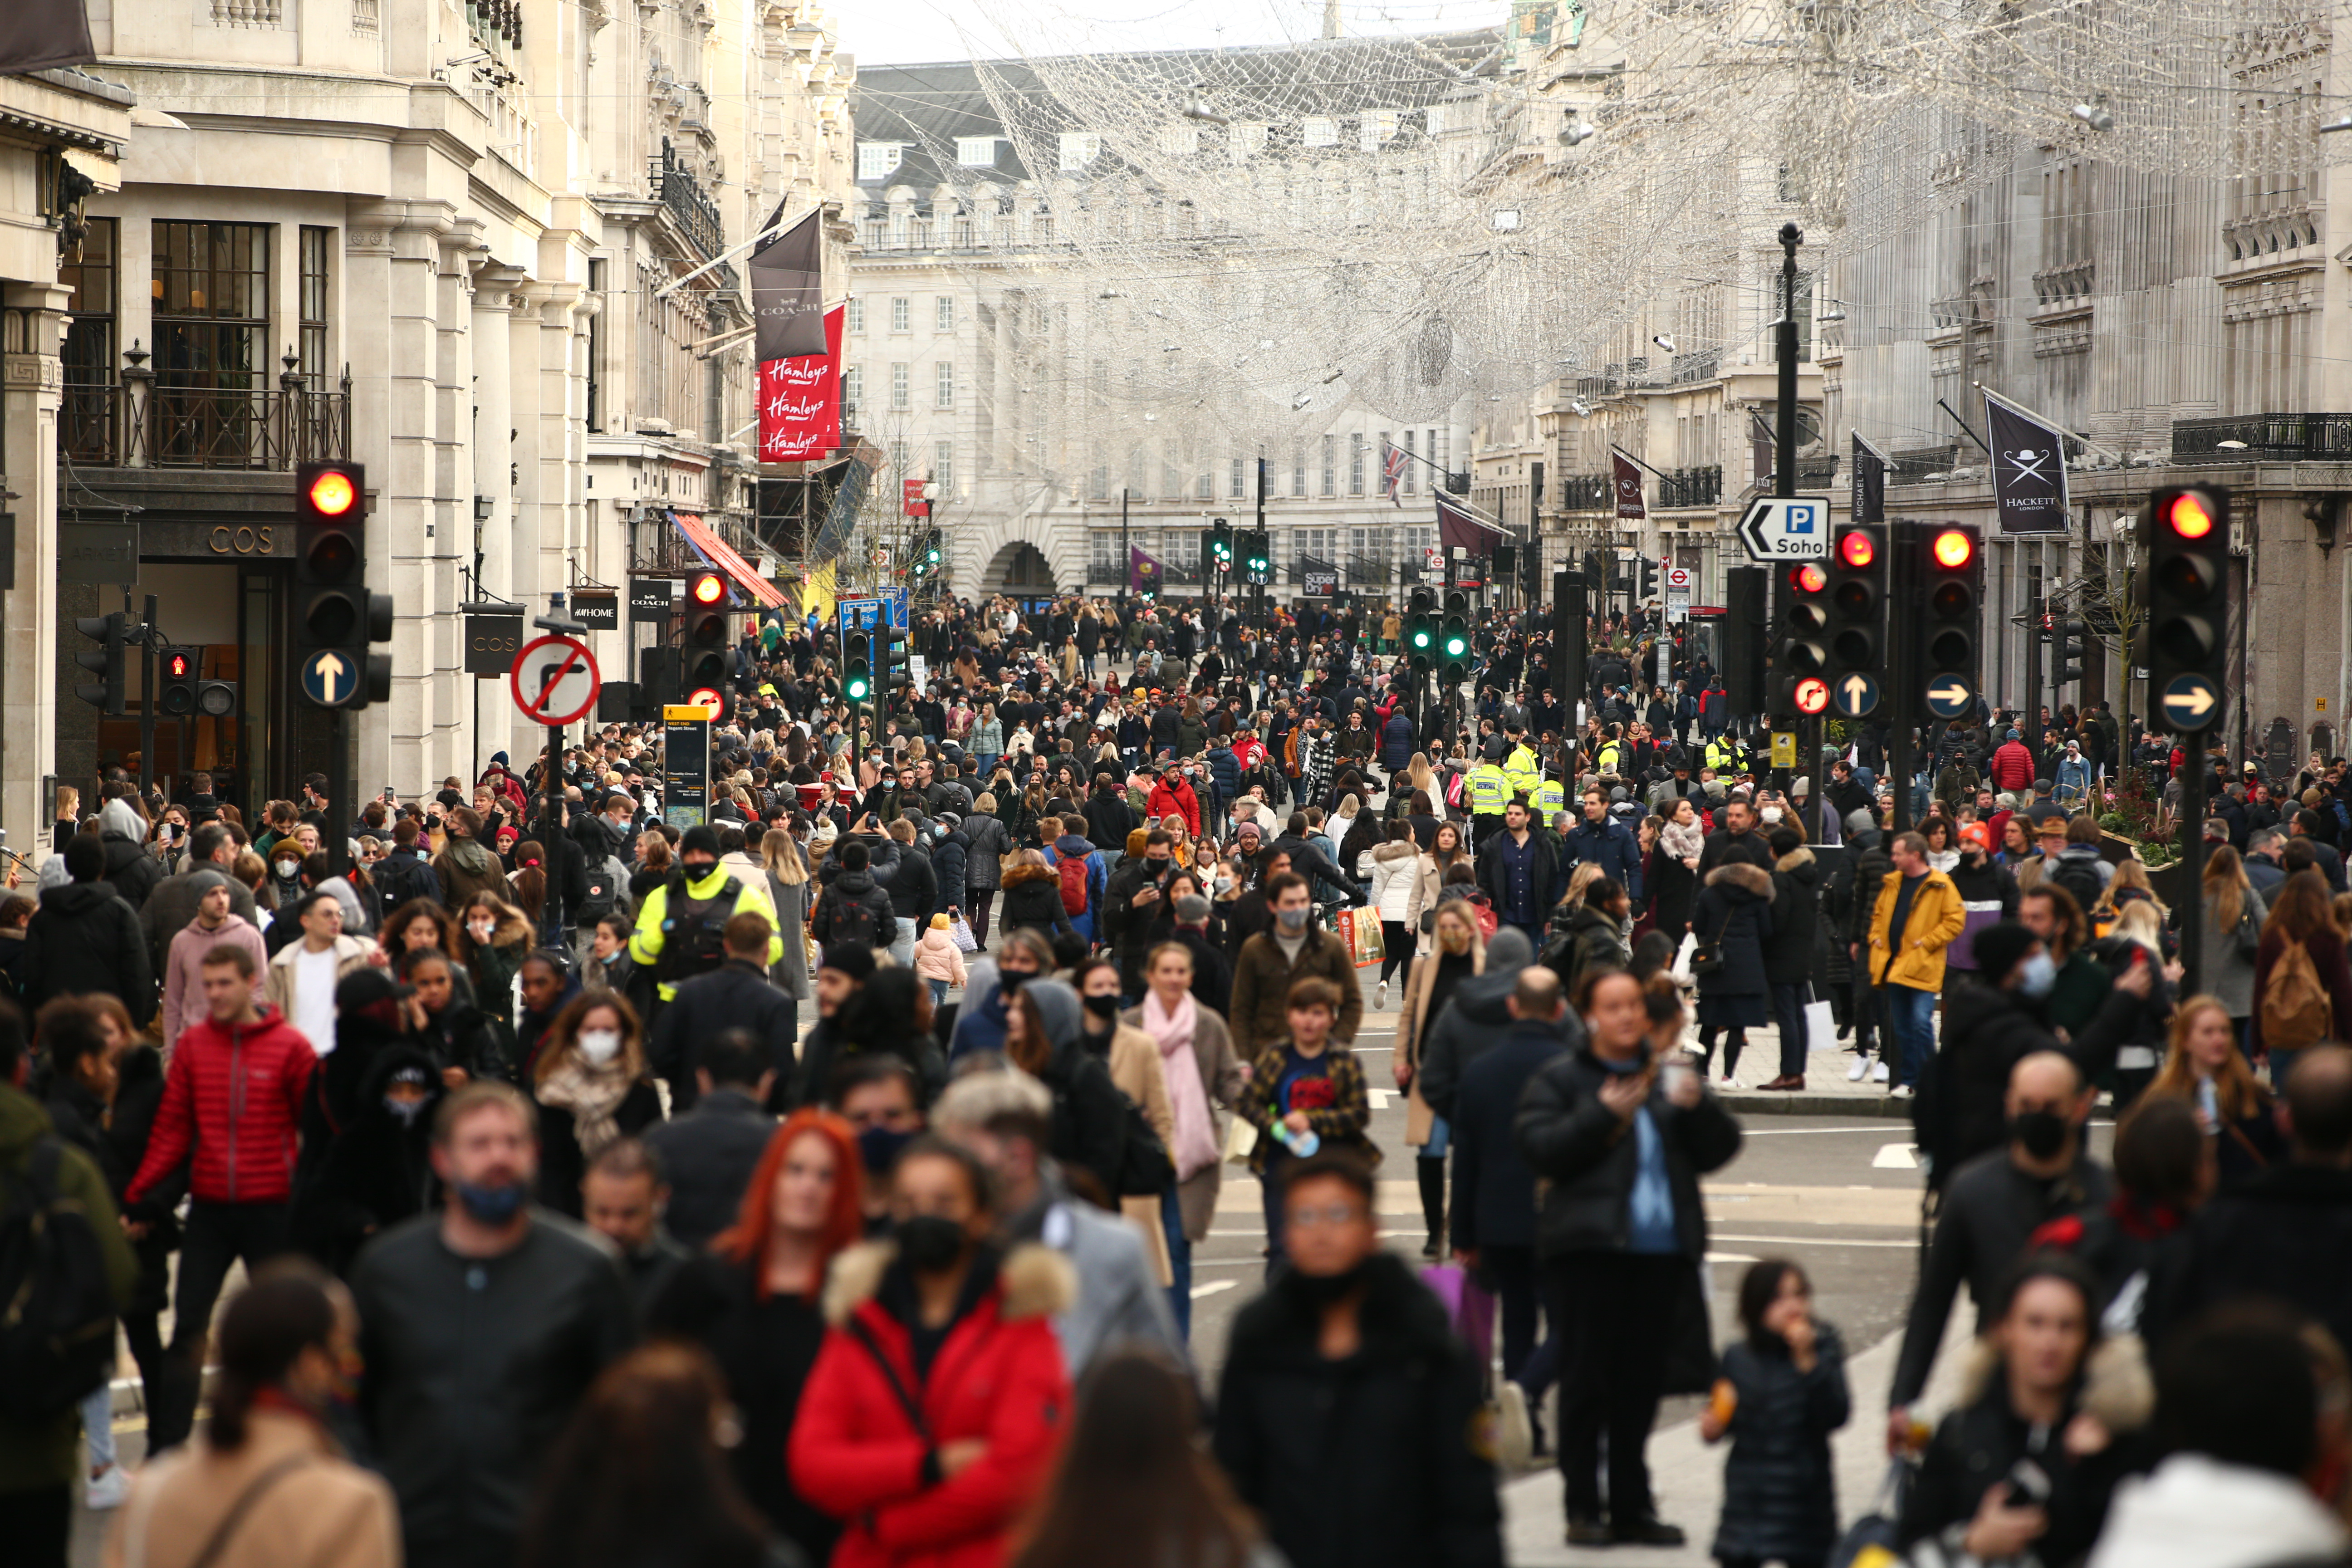 Shoppers fill a temporarily-pedestrianised Regent Street in London, England, on December 5, 2020. London has returned to so-called Tier 2 or 'high alert' coronavirus restrictions since the end of the four-week, England-wide lockdown last Wednesday, meaning a reopening of non-essential shops and hospitality businesses as the festive season gets underway. Rules under all three of England's tiers have been strengthened from before the November lockdown, however, with pubs and restaurants most severely impacted. In London's West End, meanwhile, Oxford Street and Regent Street were both packed with Christmas shoppers this afternoon, with the retail sector hoping for a strong end to one of its most difficult years. (Photo by David Cliff/NurPhoto via Getty Images)